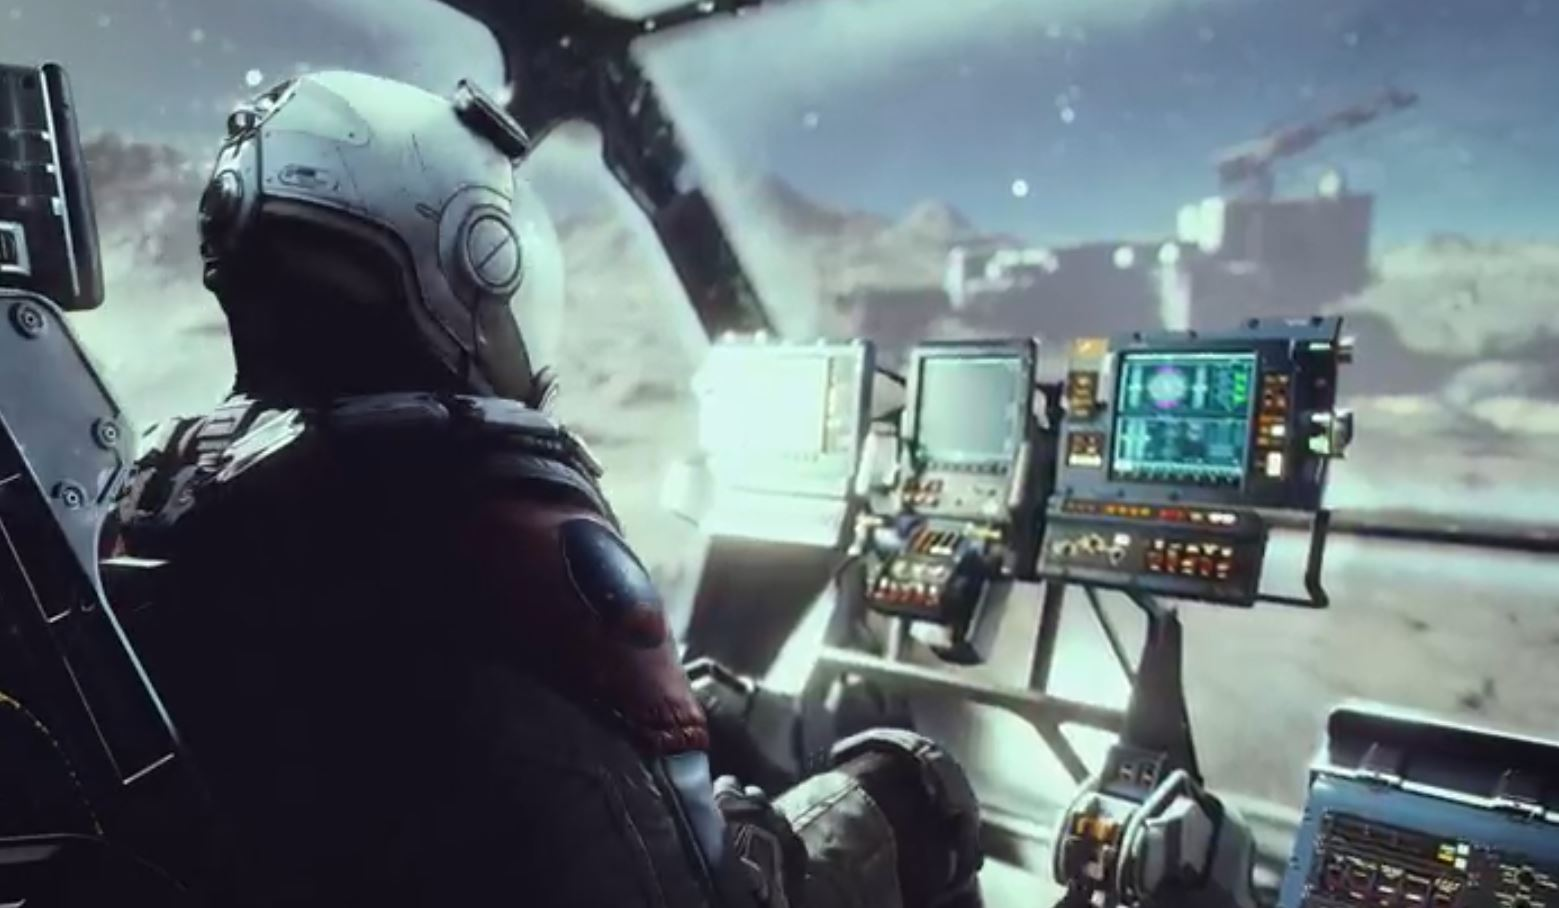 its-official-starfield-isnt-coming-to-ps5-first-trailer-reveals-1